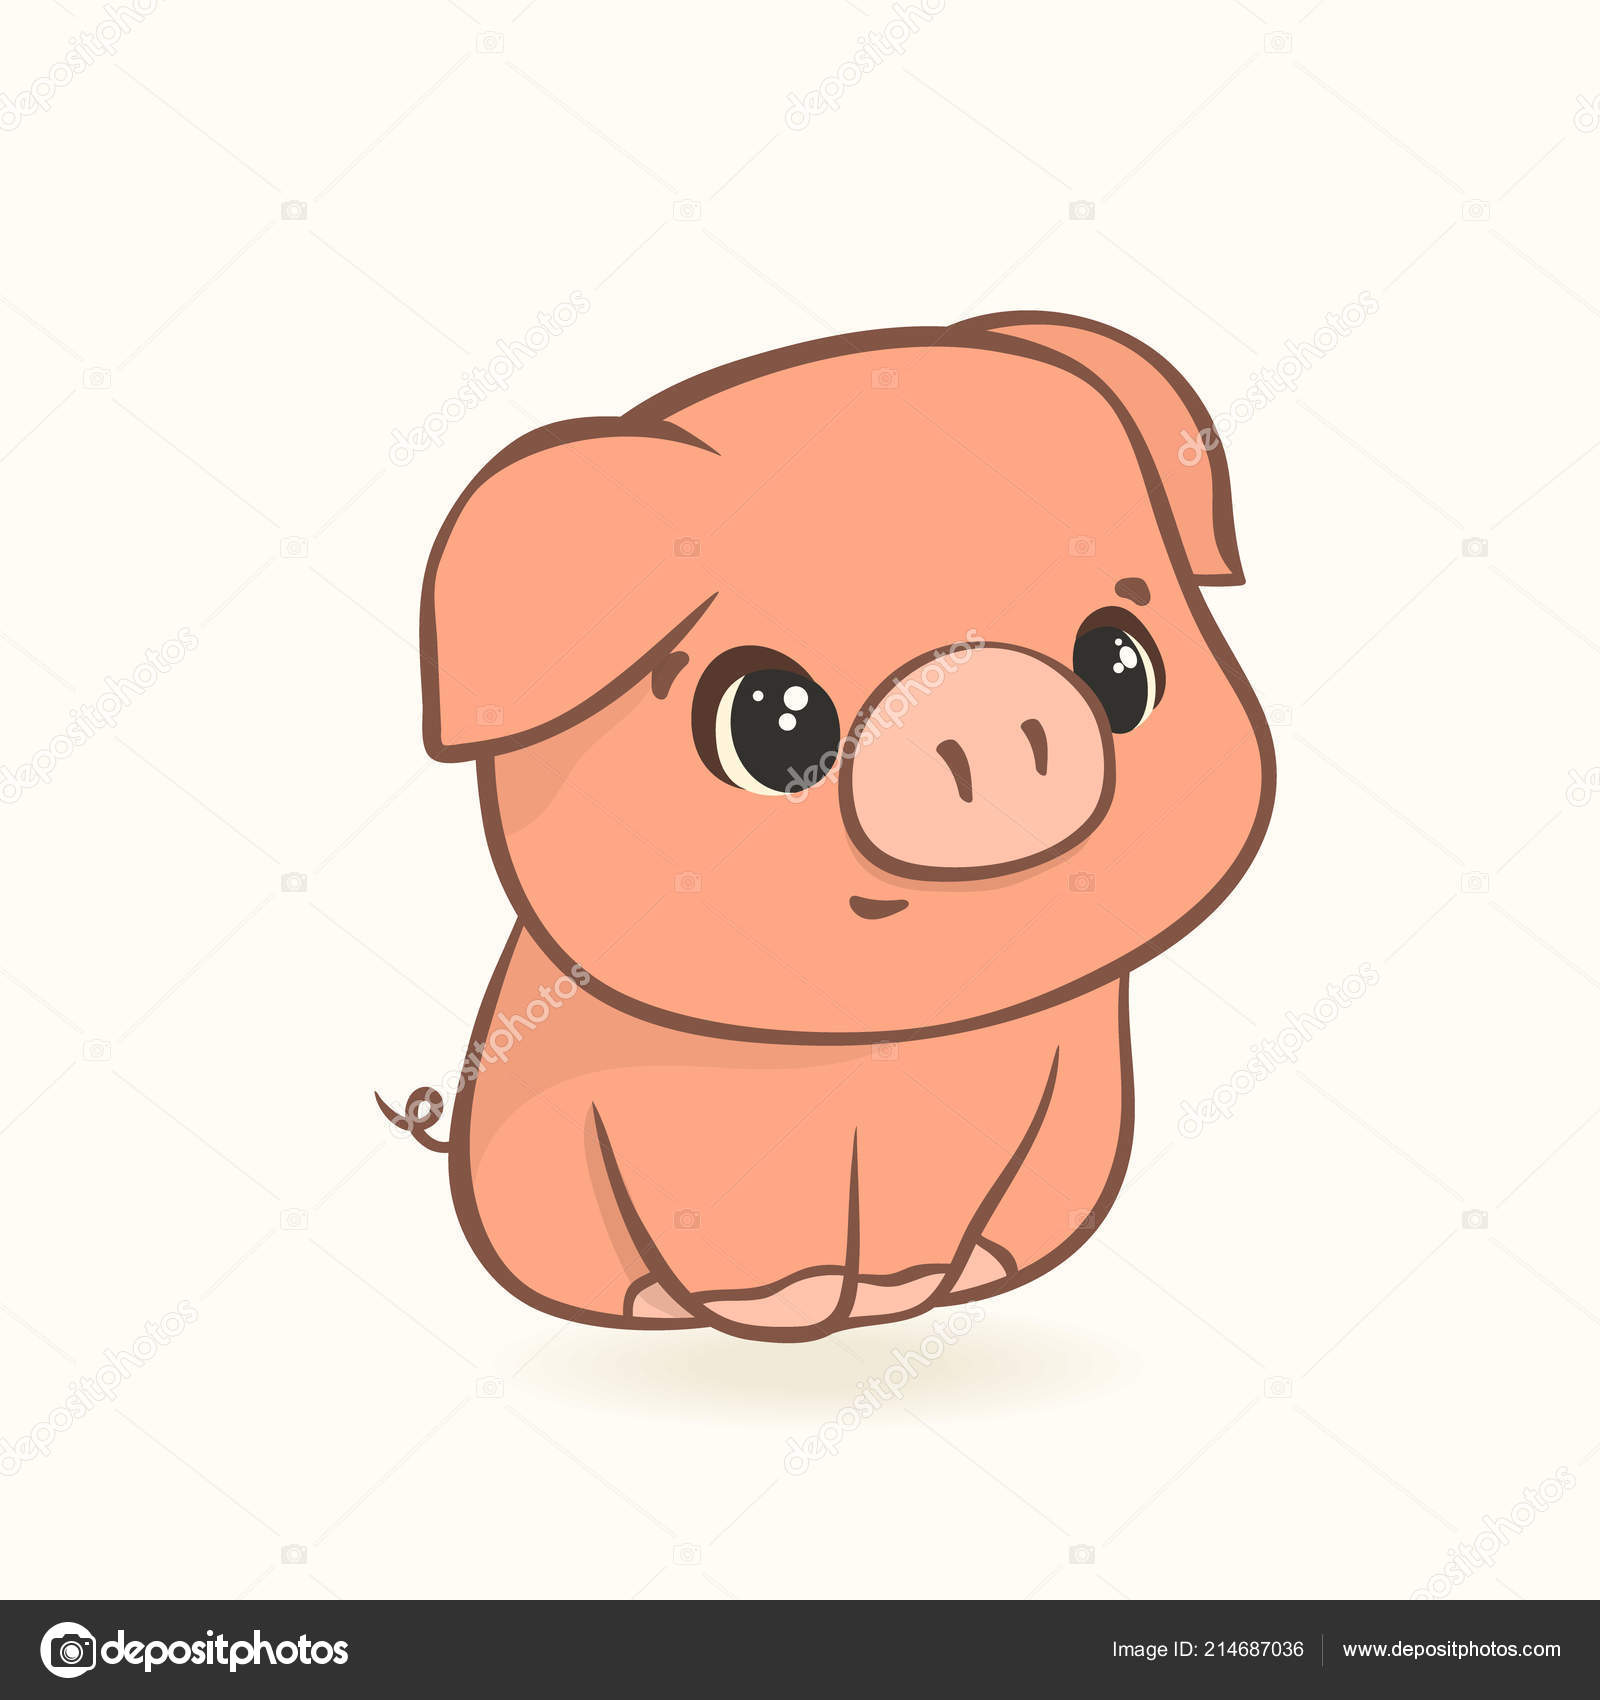 Cute Funny Pig Cartoon Style Isolated White Background Piggy Cartoon Vector Image By C Anna 1161 Vector Stock 214687036